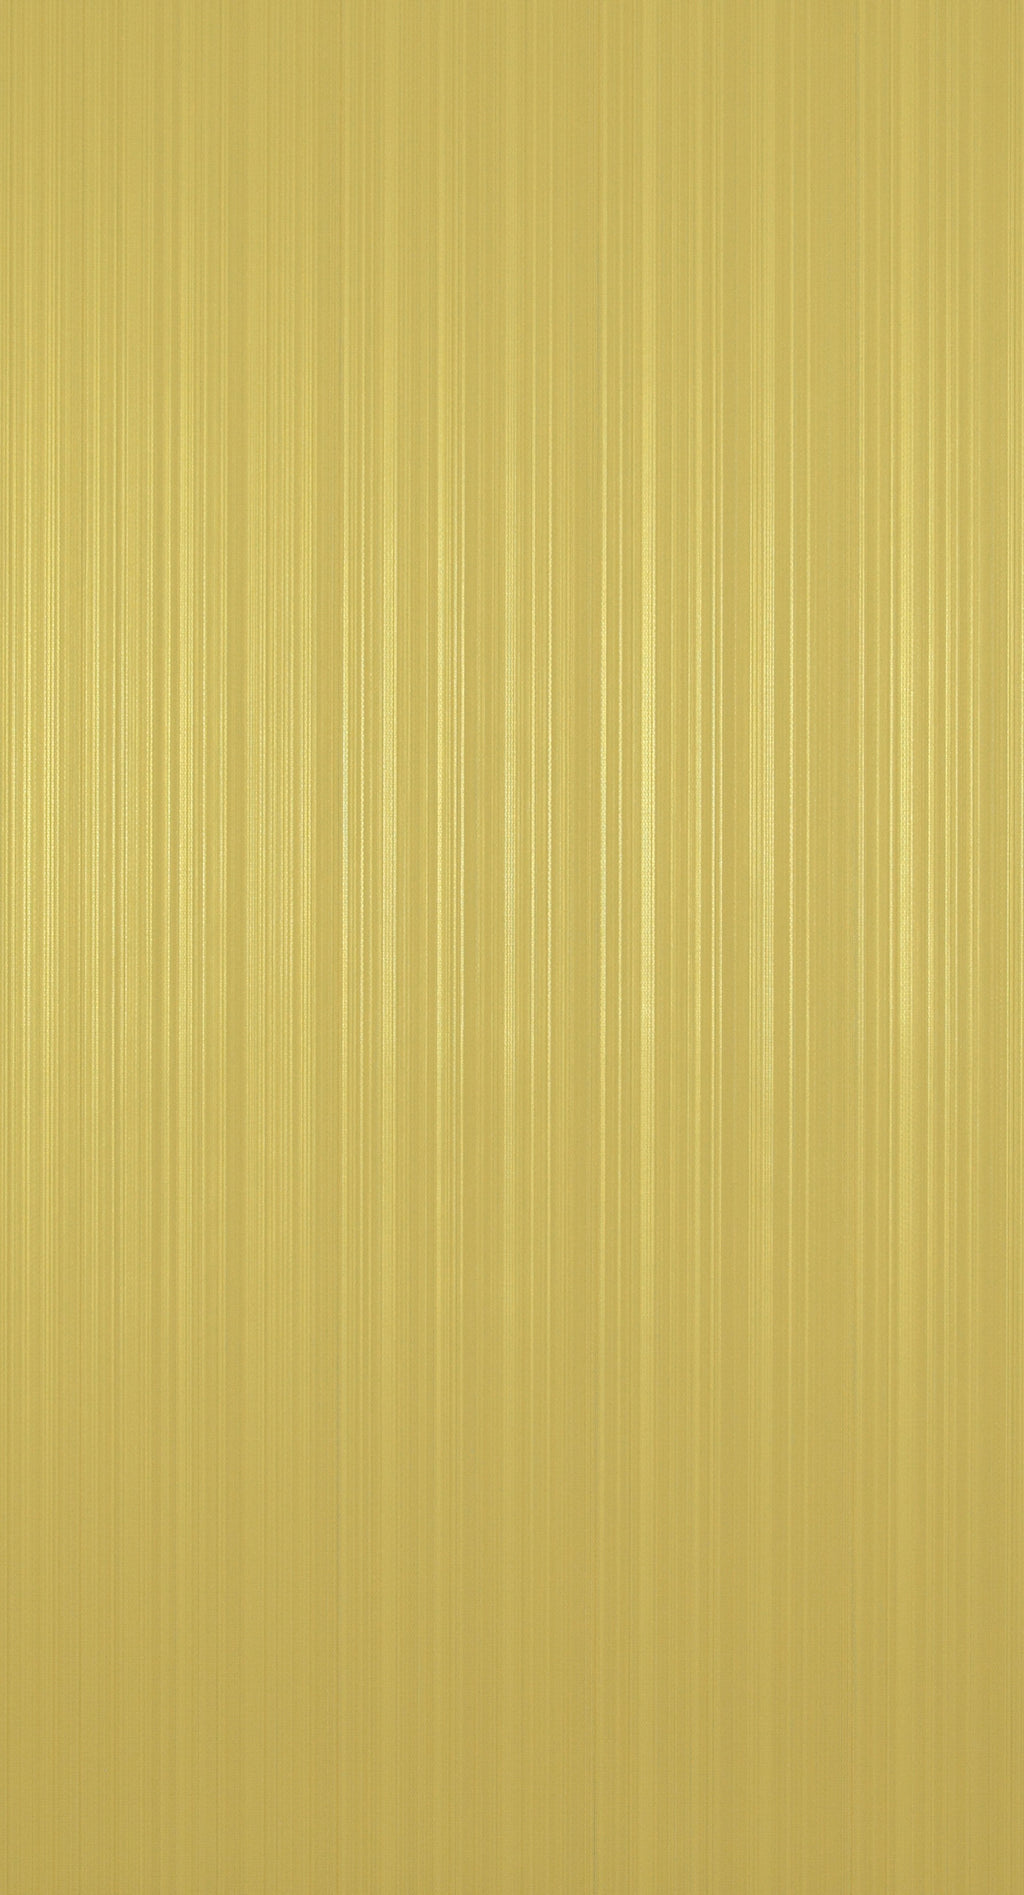 Yellow Green Minimalist Vinyl Wallpaper C7198 | Commercial & Office